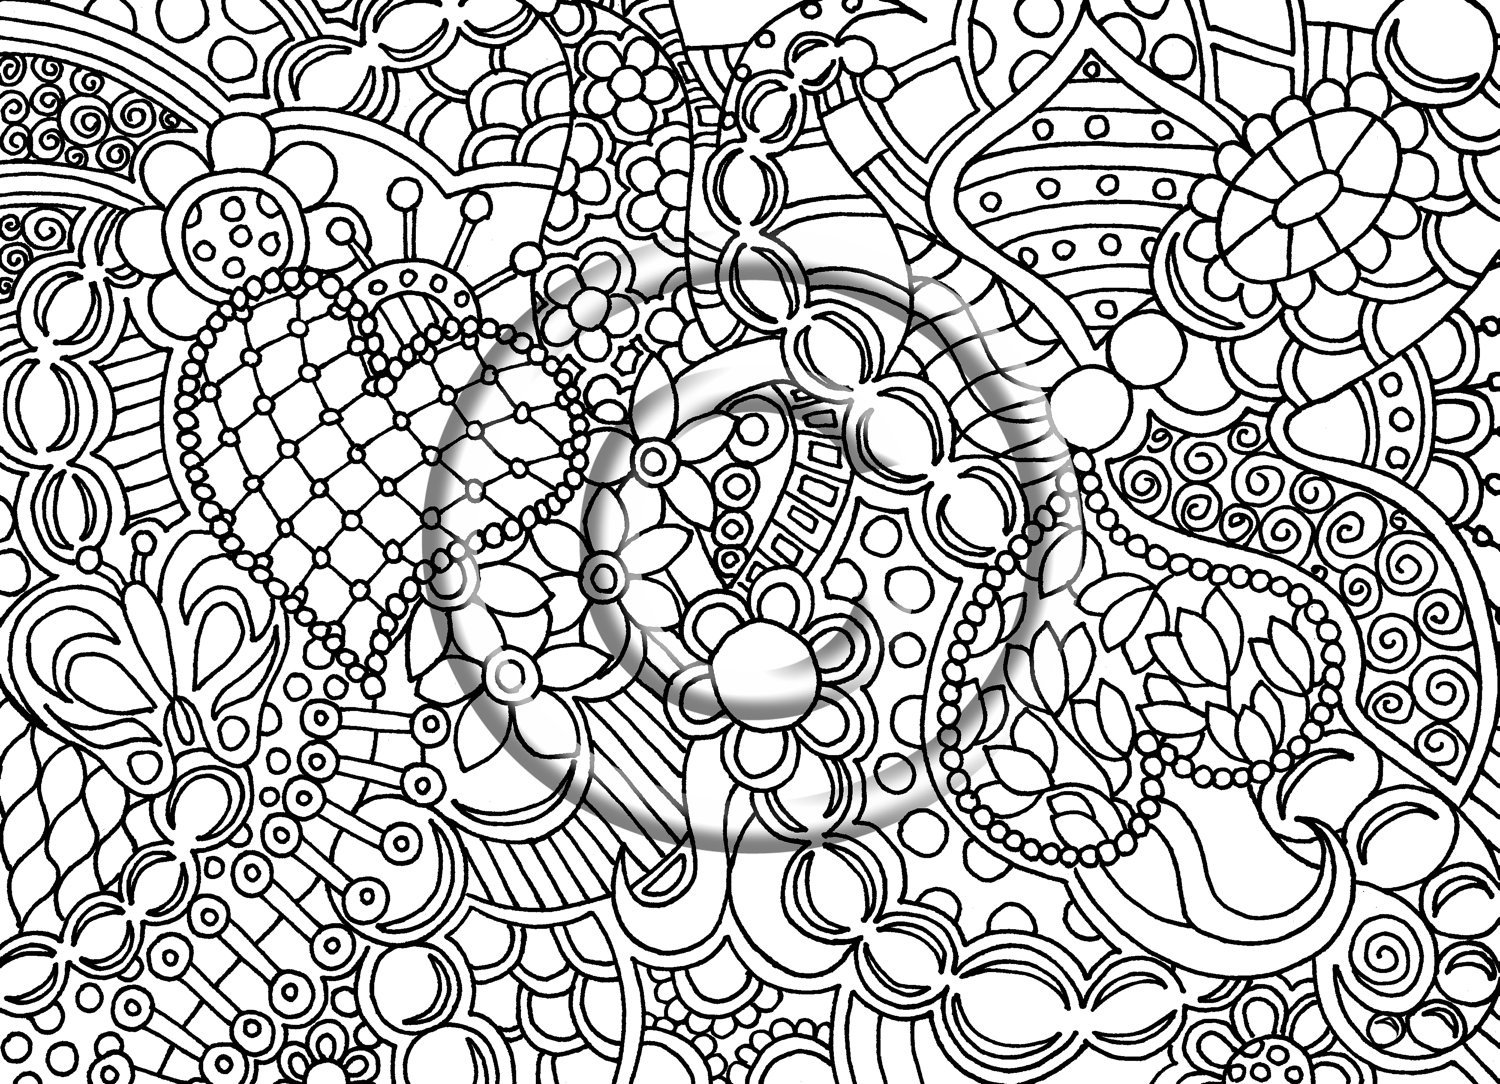 Drawn triipy abstract Inspired Zentangle Psychedelic Page Instant